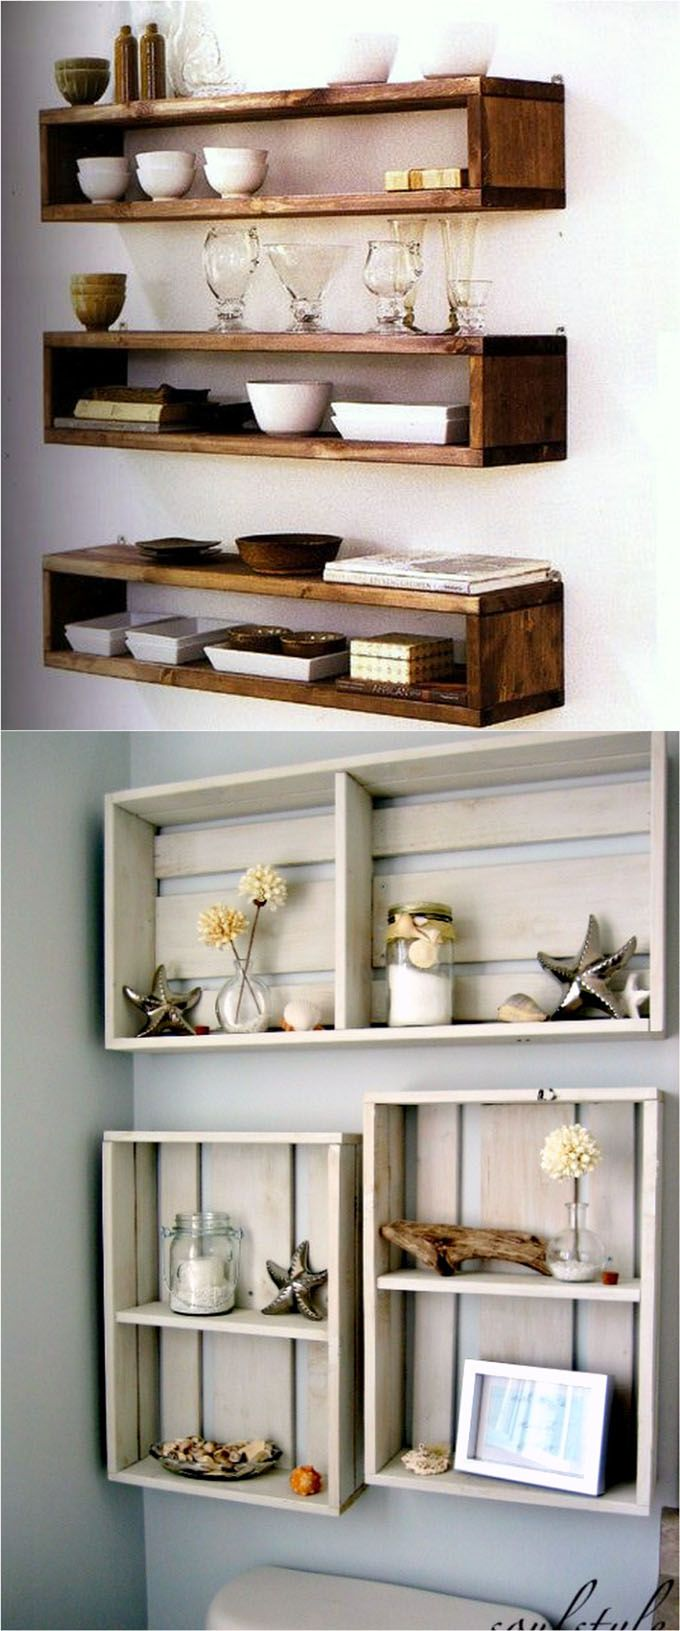 16 Easy And Stylish Diy Floating Shelves Wall Projects To Try